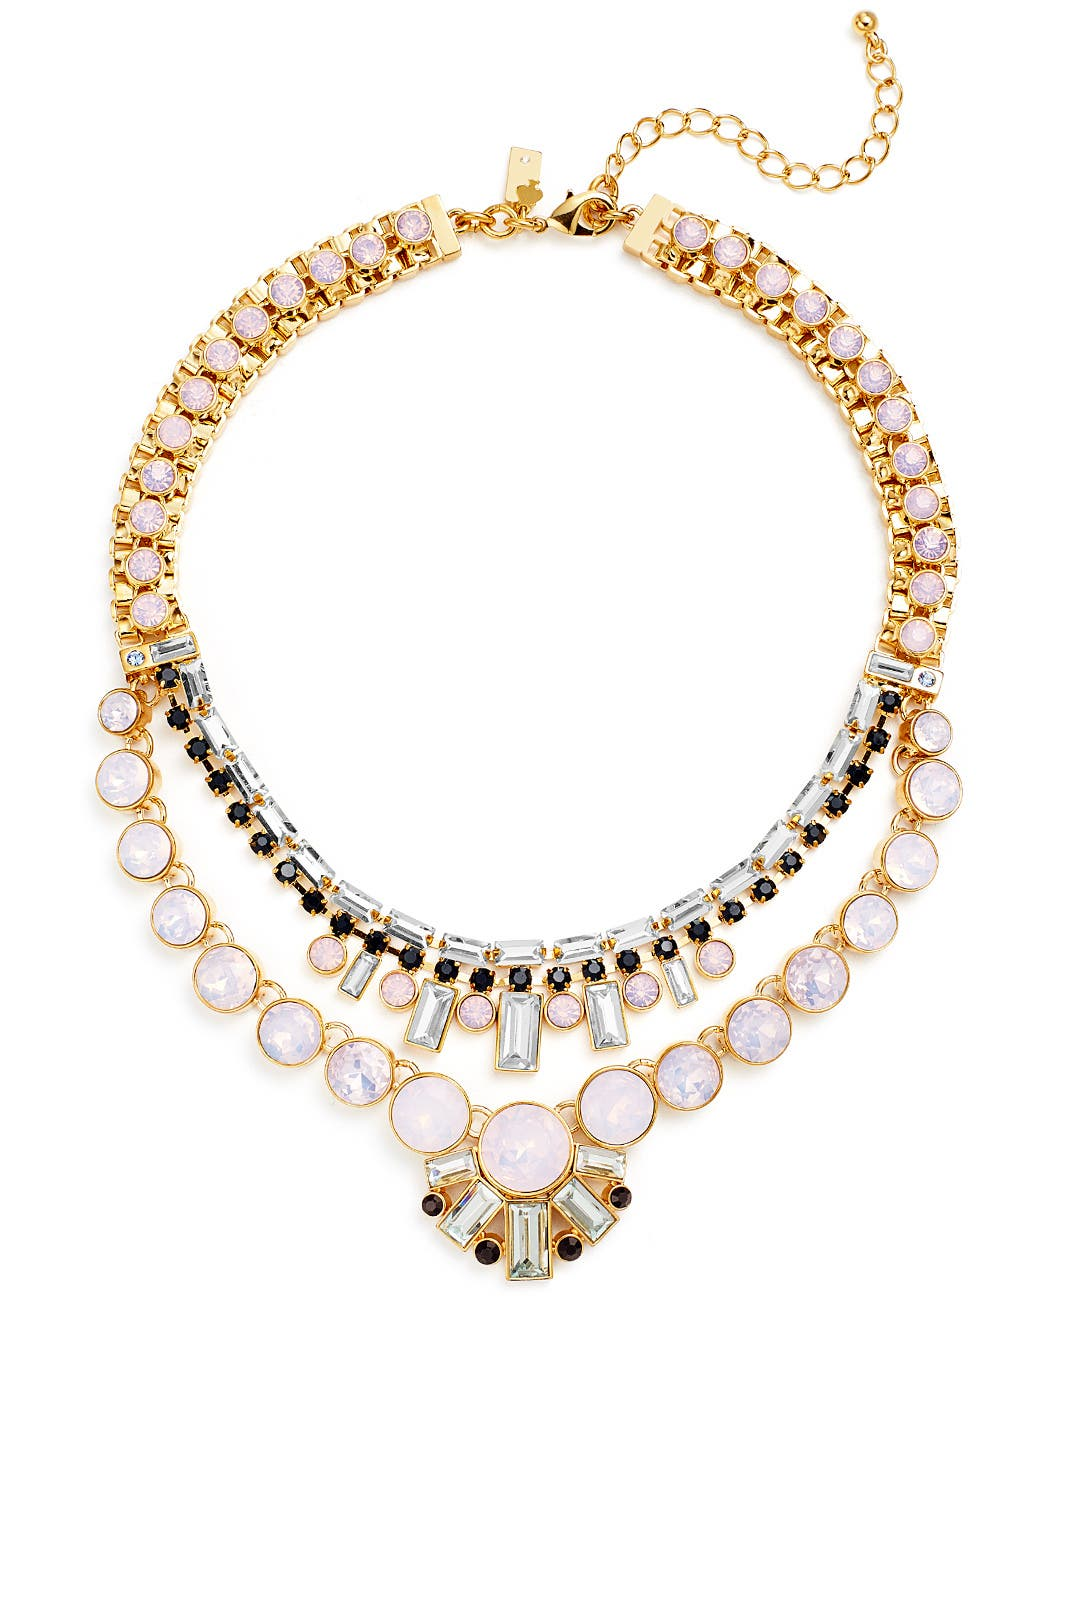 Clink Of Ice Double Strand Necklace By Kate Spade New York Accessories For  $45  Rent The Runway